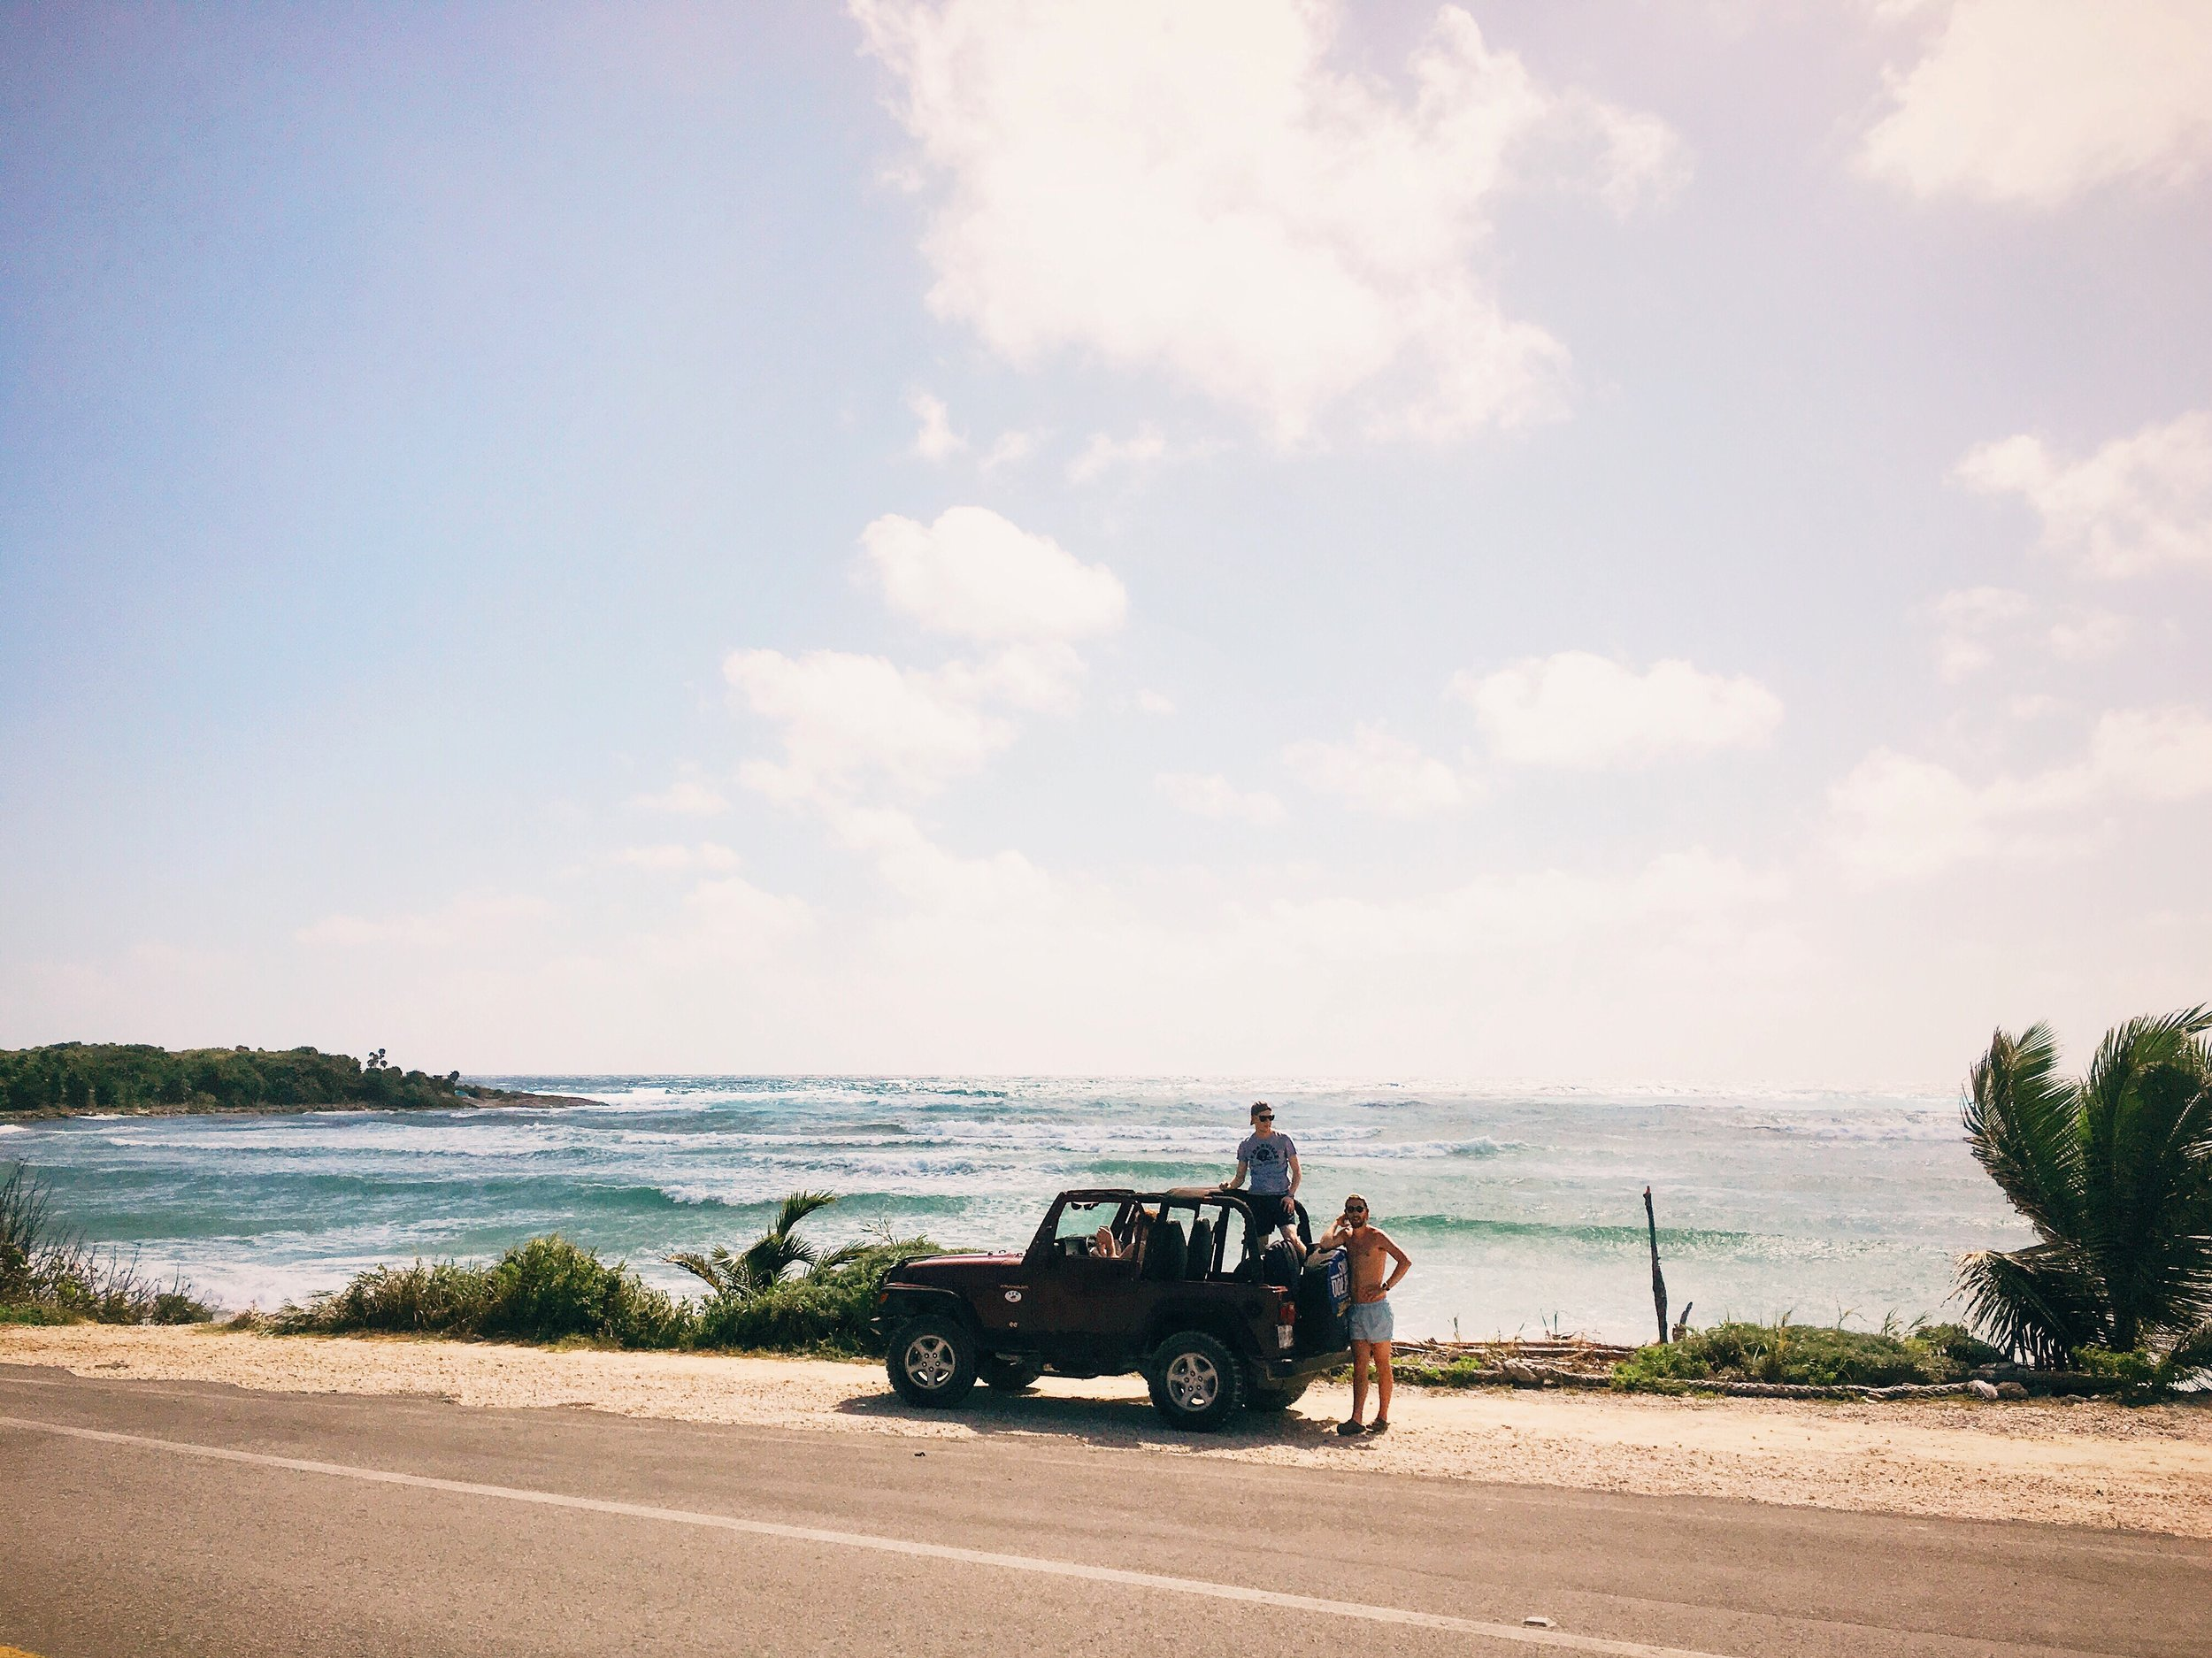 jeep parked on the side of a scenic seaside road with a group of friends